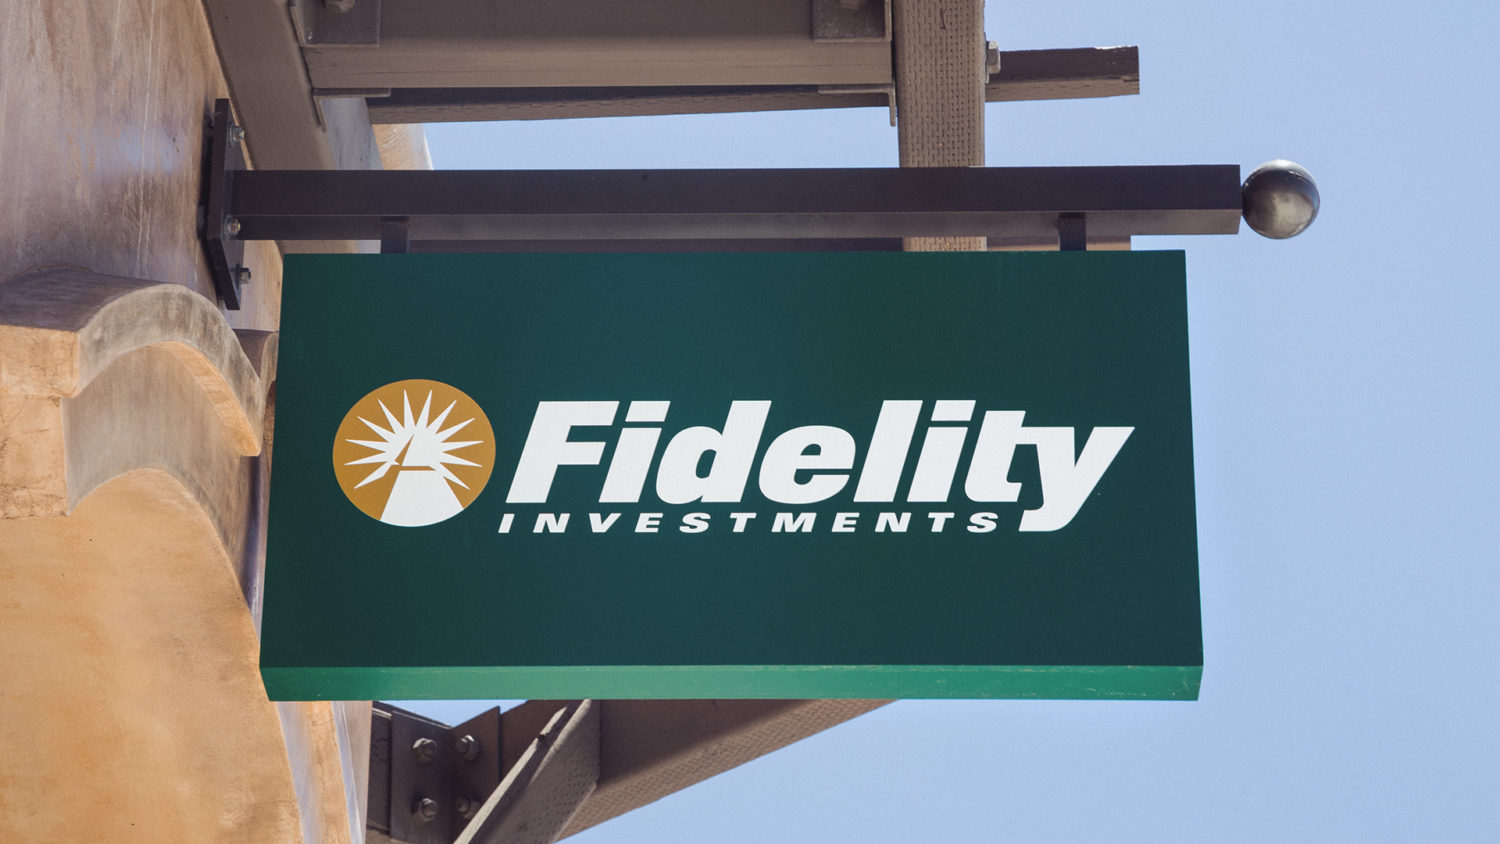 Fidelity is hiring bitcoin mining engineer to scale its operations - The Block